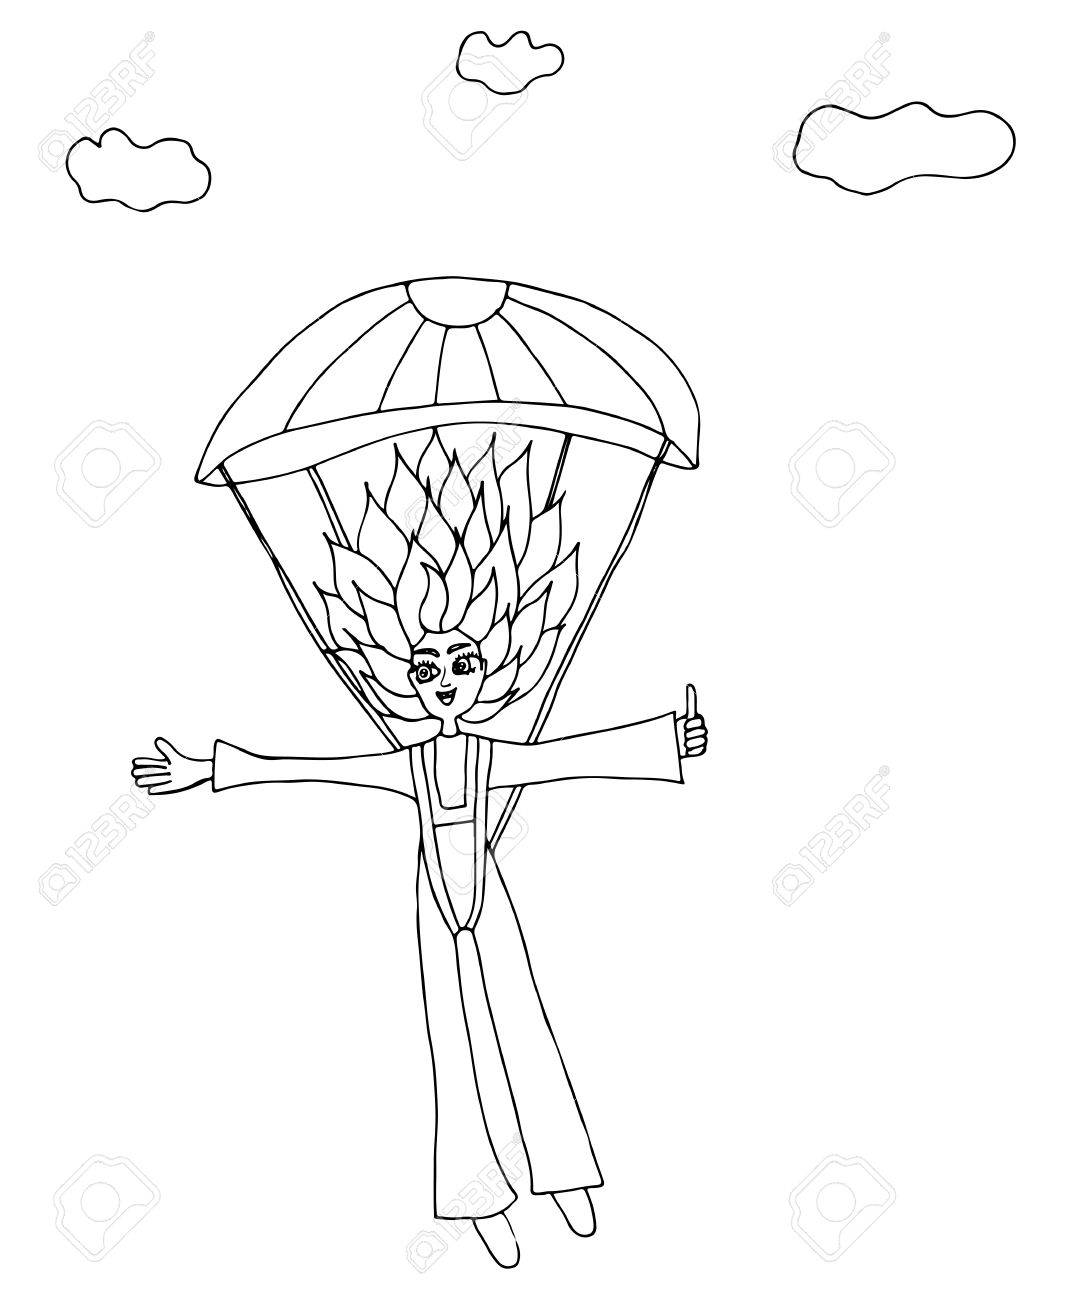 Parachute Drawing